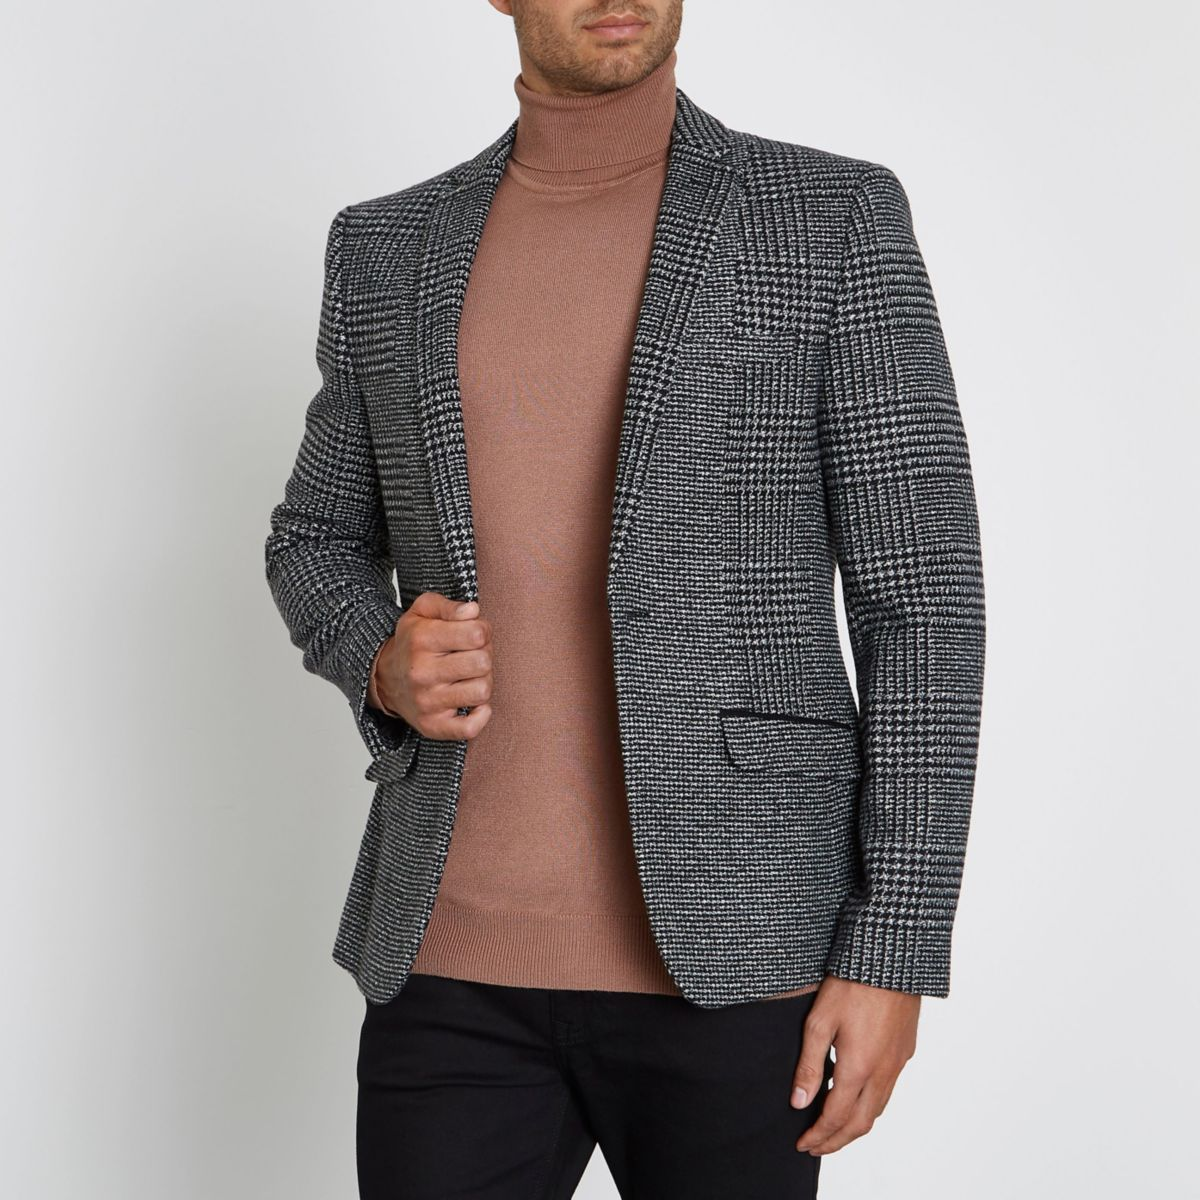 Men's blazers in classic tweed for smart casual. Shop blazer jackets for a sophisticated finish. Next day delivery and free returns available.